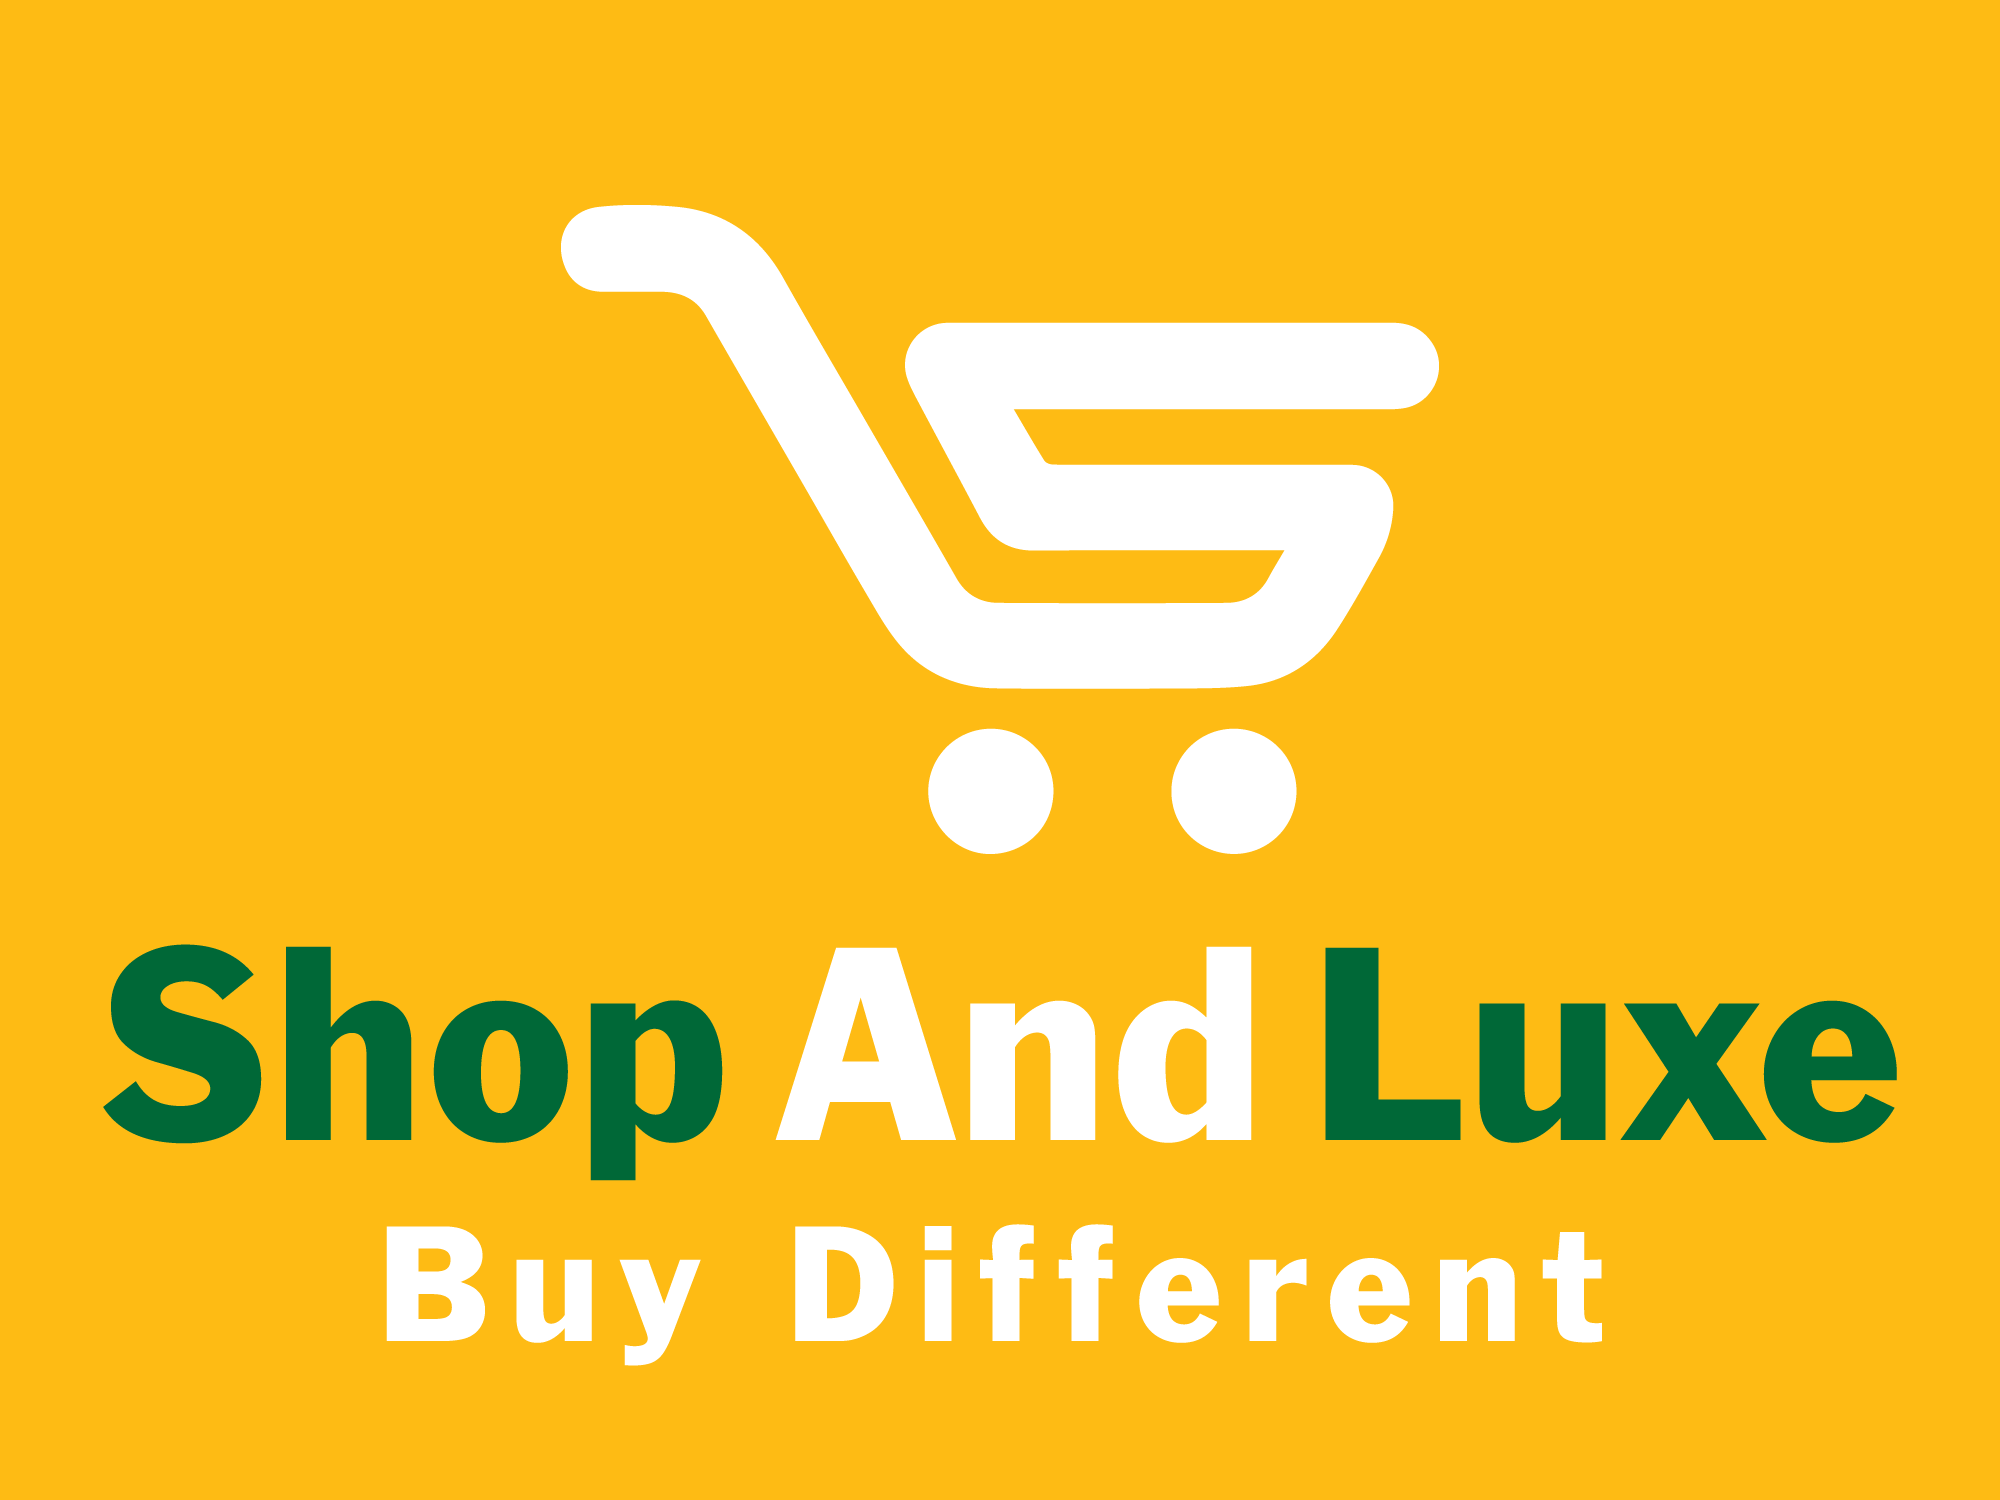 Low price in women clothing, men clothing, Electronics, Beauty & Health, Shoes, Watches, Jewellery & Accessories, Mother & Kids, Underwear & Sleepwear, Hair extensions & Wigs, Computer & Office, Home & Garden, Home Improvement, Home & Garden, Cellphones & Telecommunication